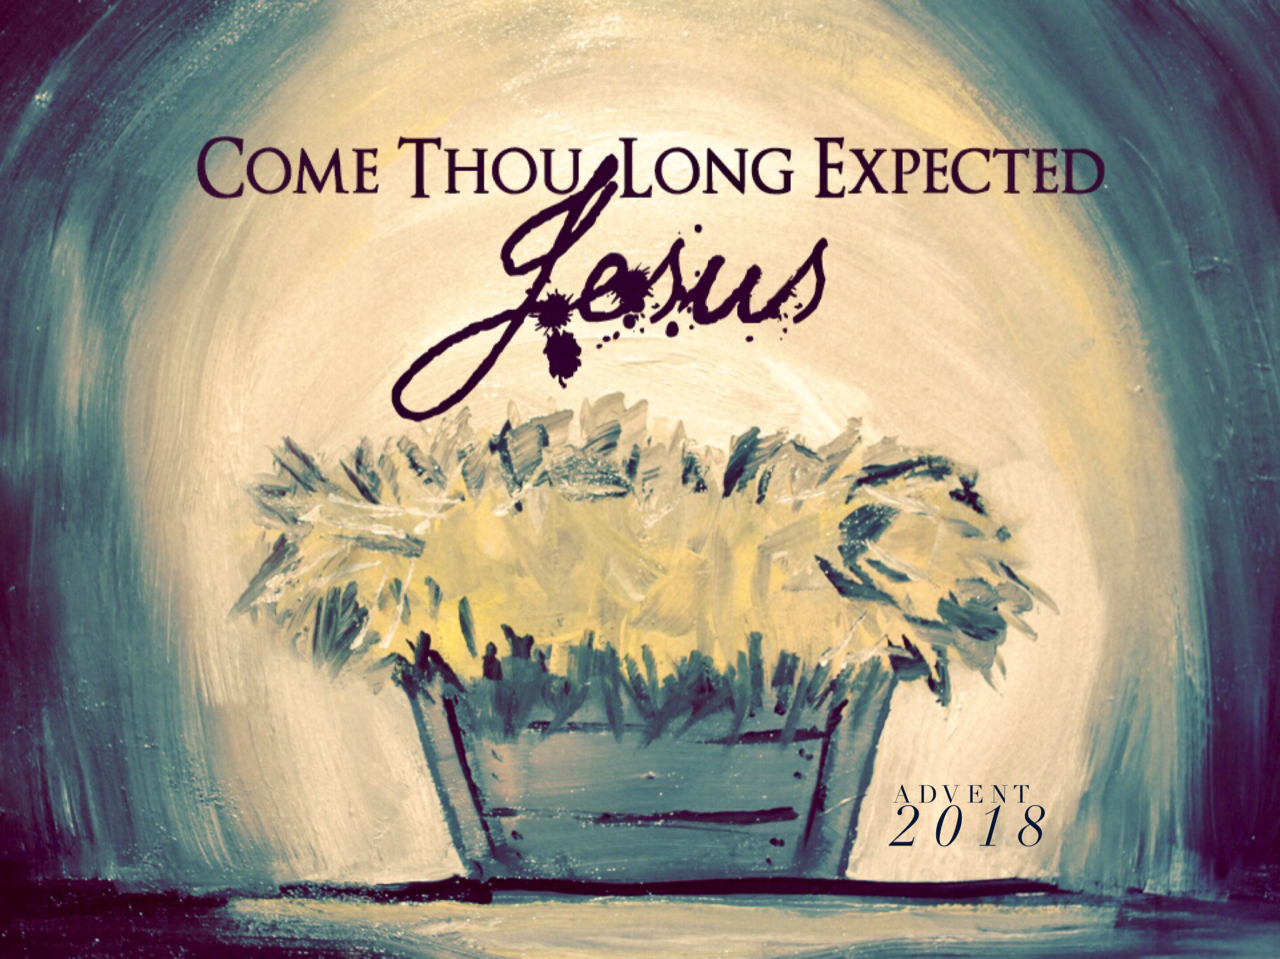 Advent 2018: Come Thou Long Expected Jesus